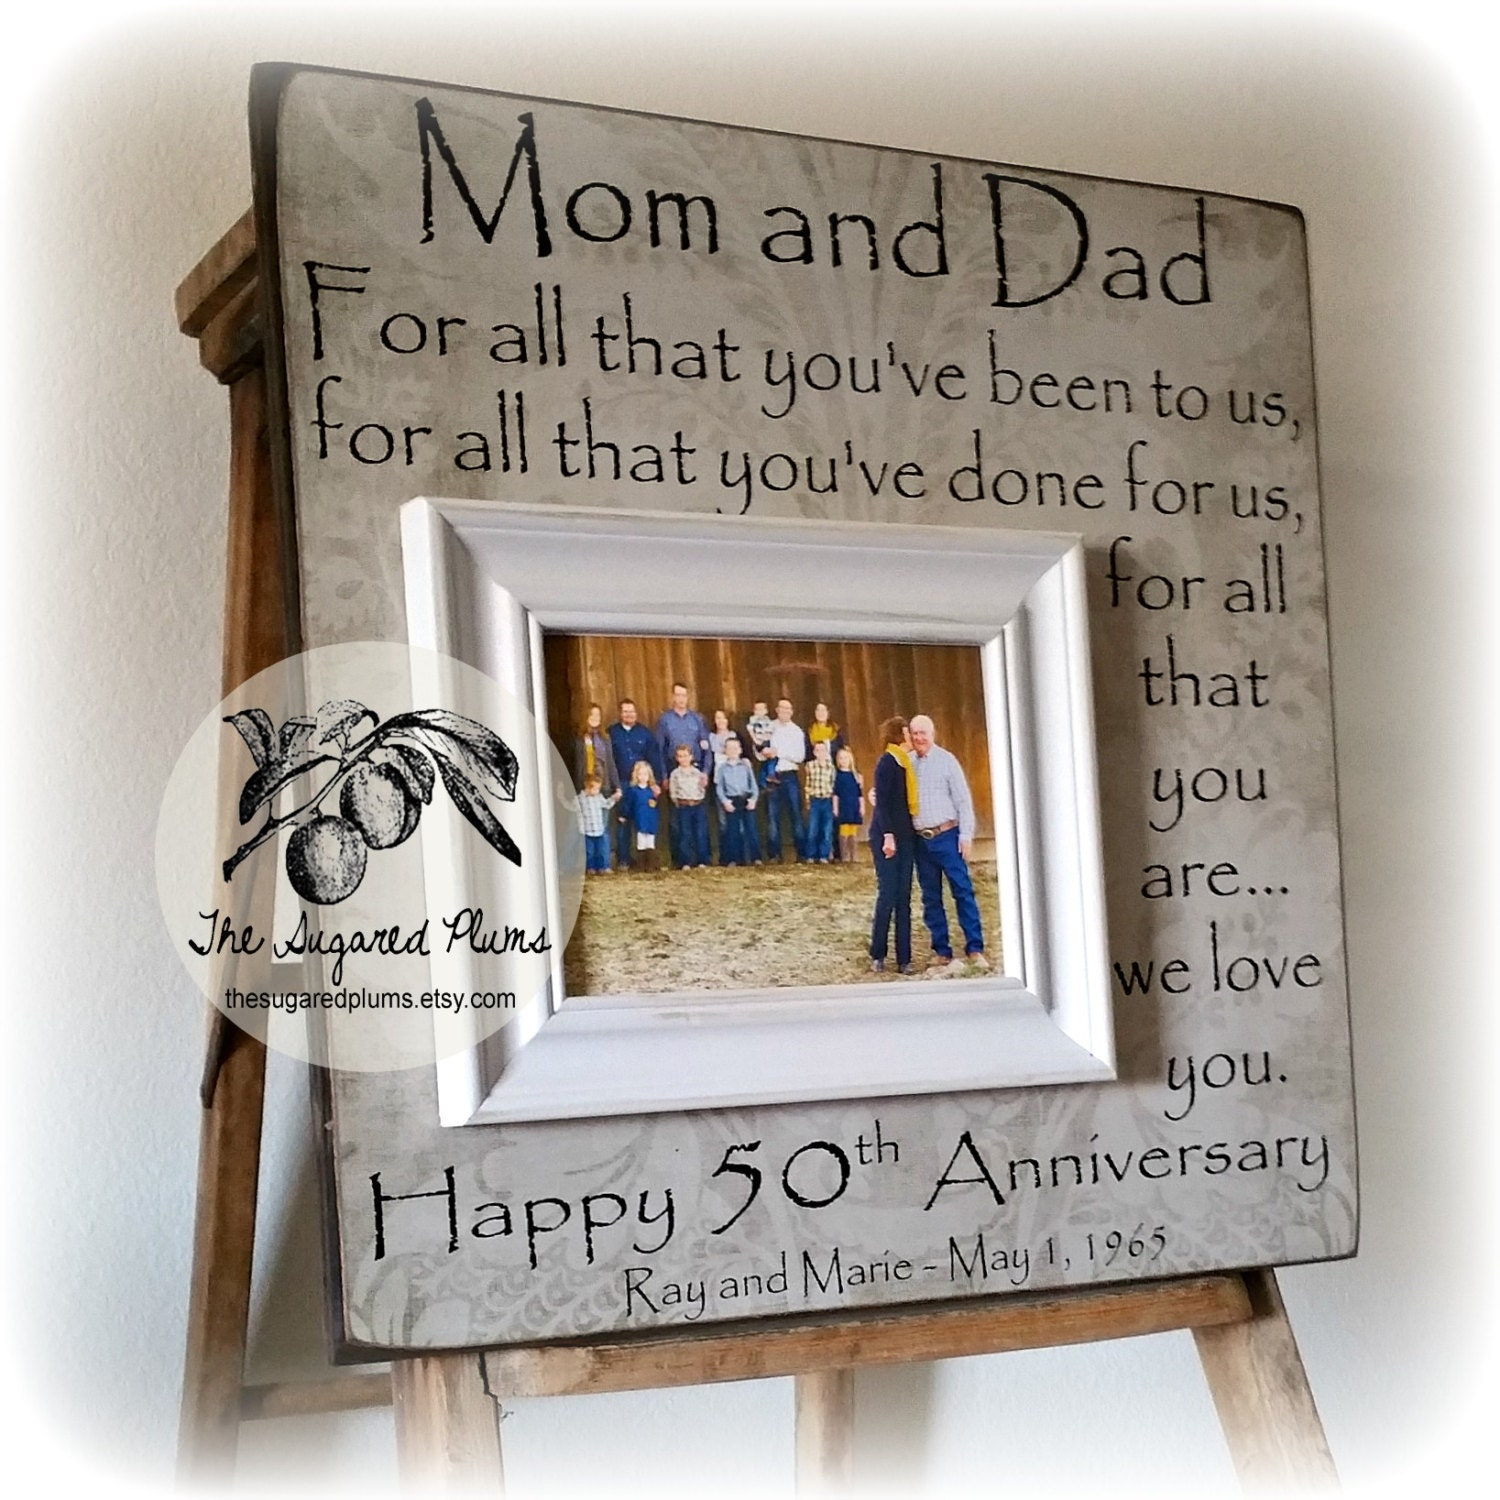 40th Wedding Anniversary Gifts For Mum And Dad : 50th Anniversary Gifts Parents Anniversary Gift For All That